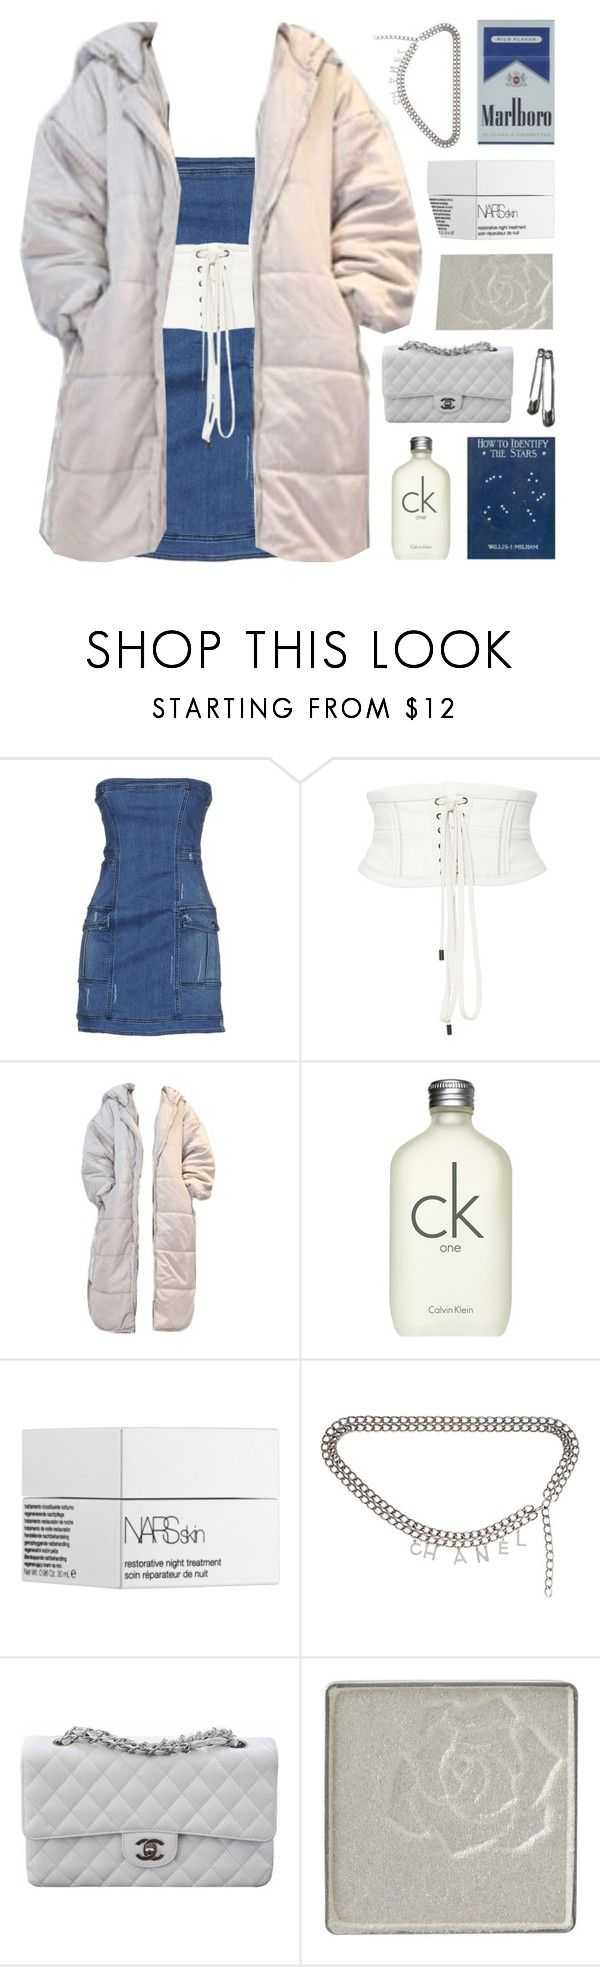 """i really like this jacket"" by celhestial ❤ liked on Polyvore featuring Pierre Balmain, Isabel Marant, Calvin Klein, NARS Cosmetics, Chanel and Anna Sui"